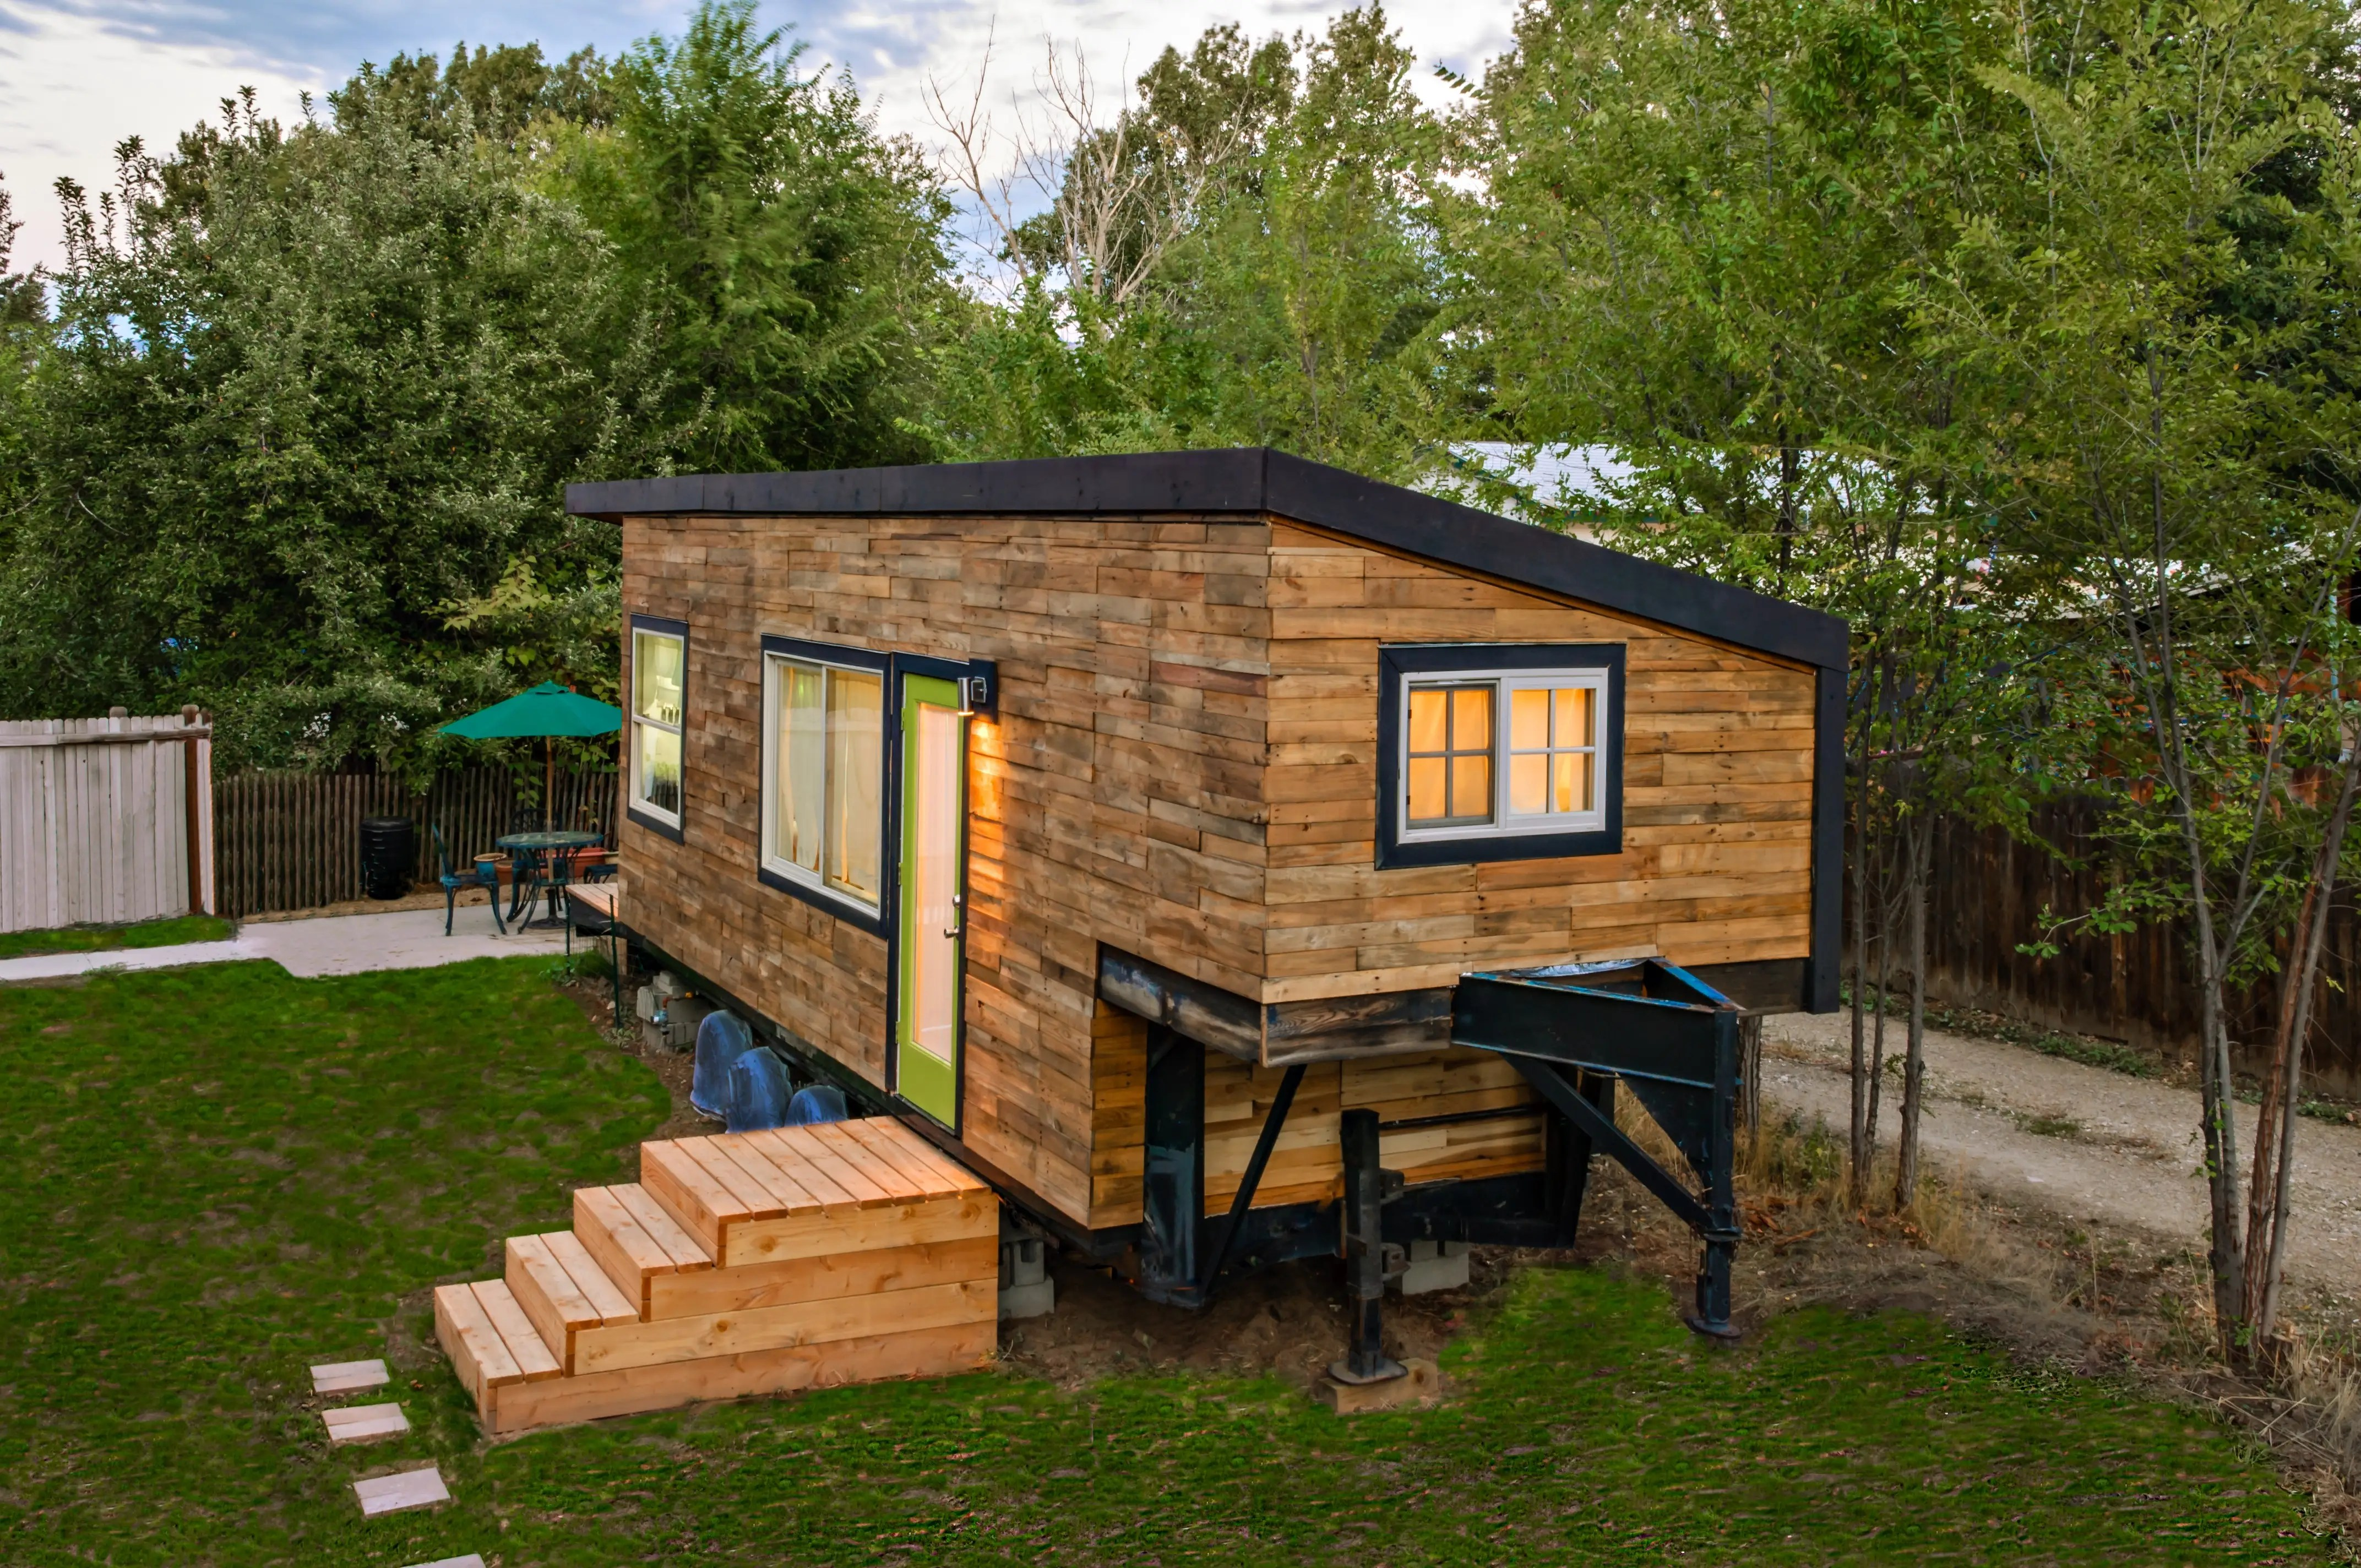 While she owns her tiny home outright, she pays to rent the land it sits on.